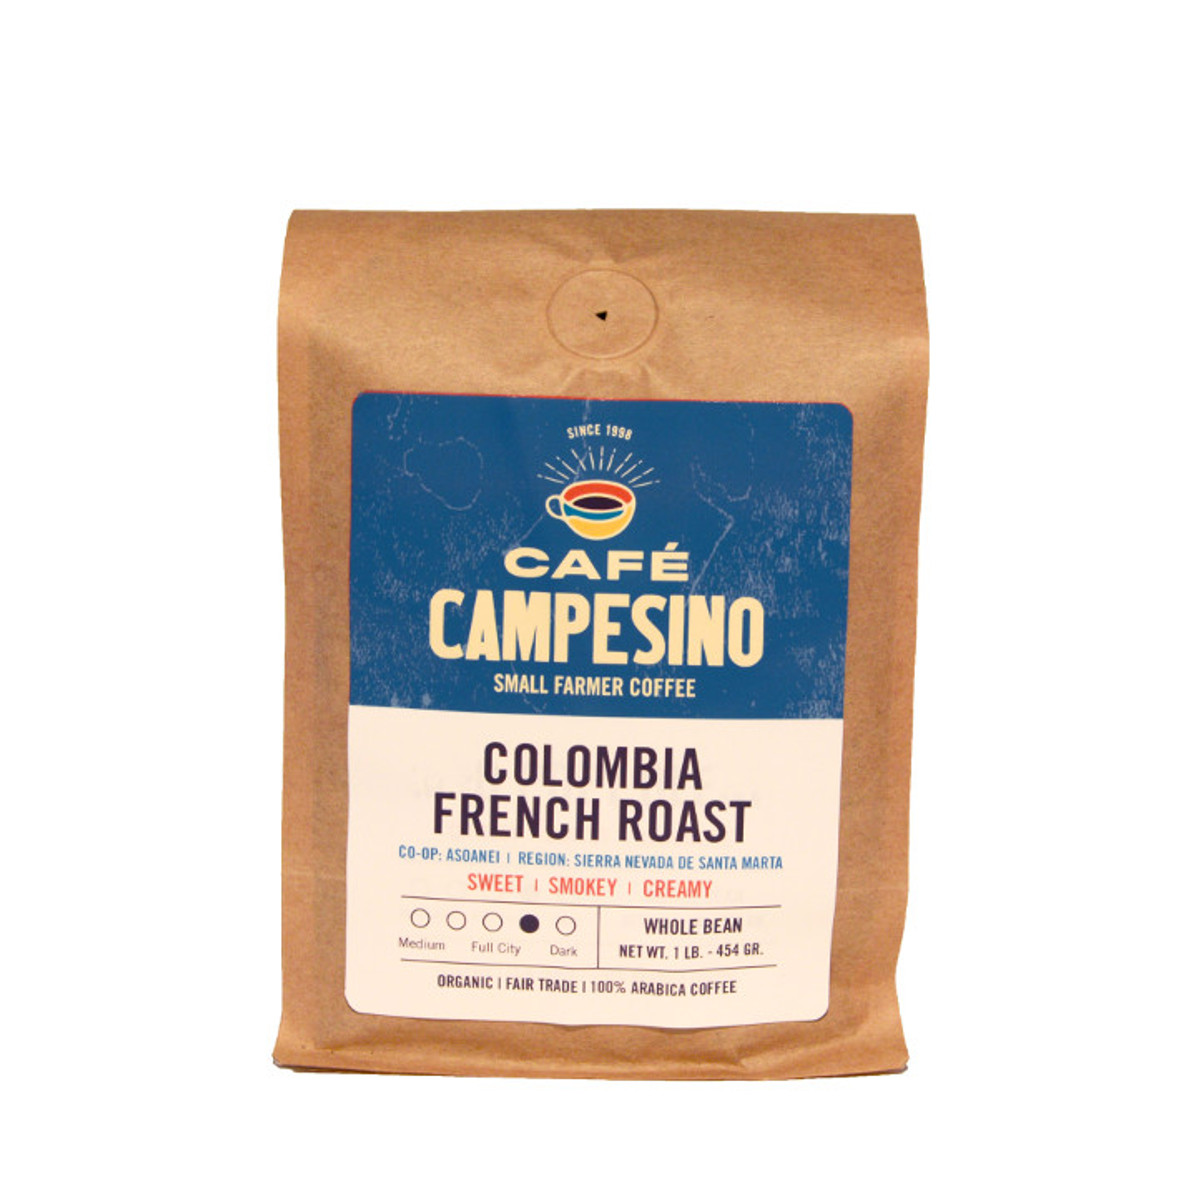 Café Campesino fair trade organic shade-grown coffee from the ANEI farmer cooperative in Colombia